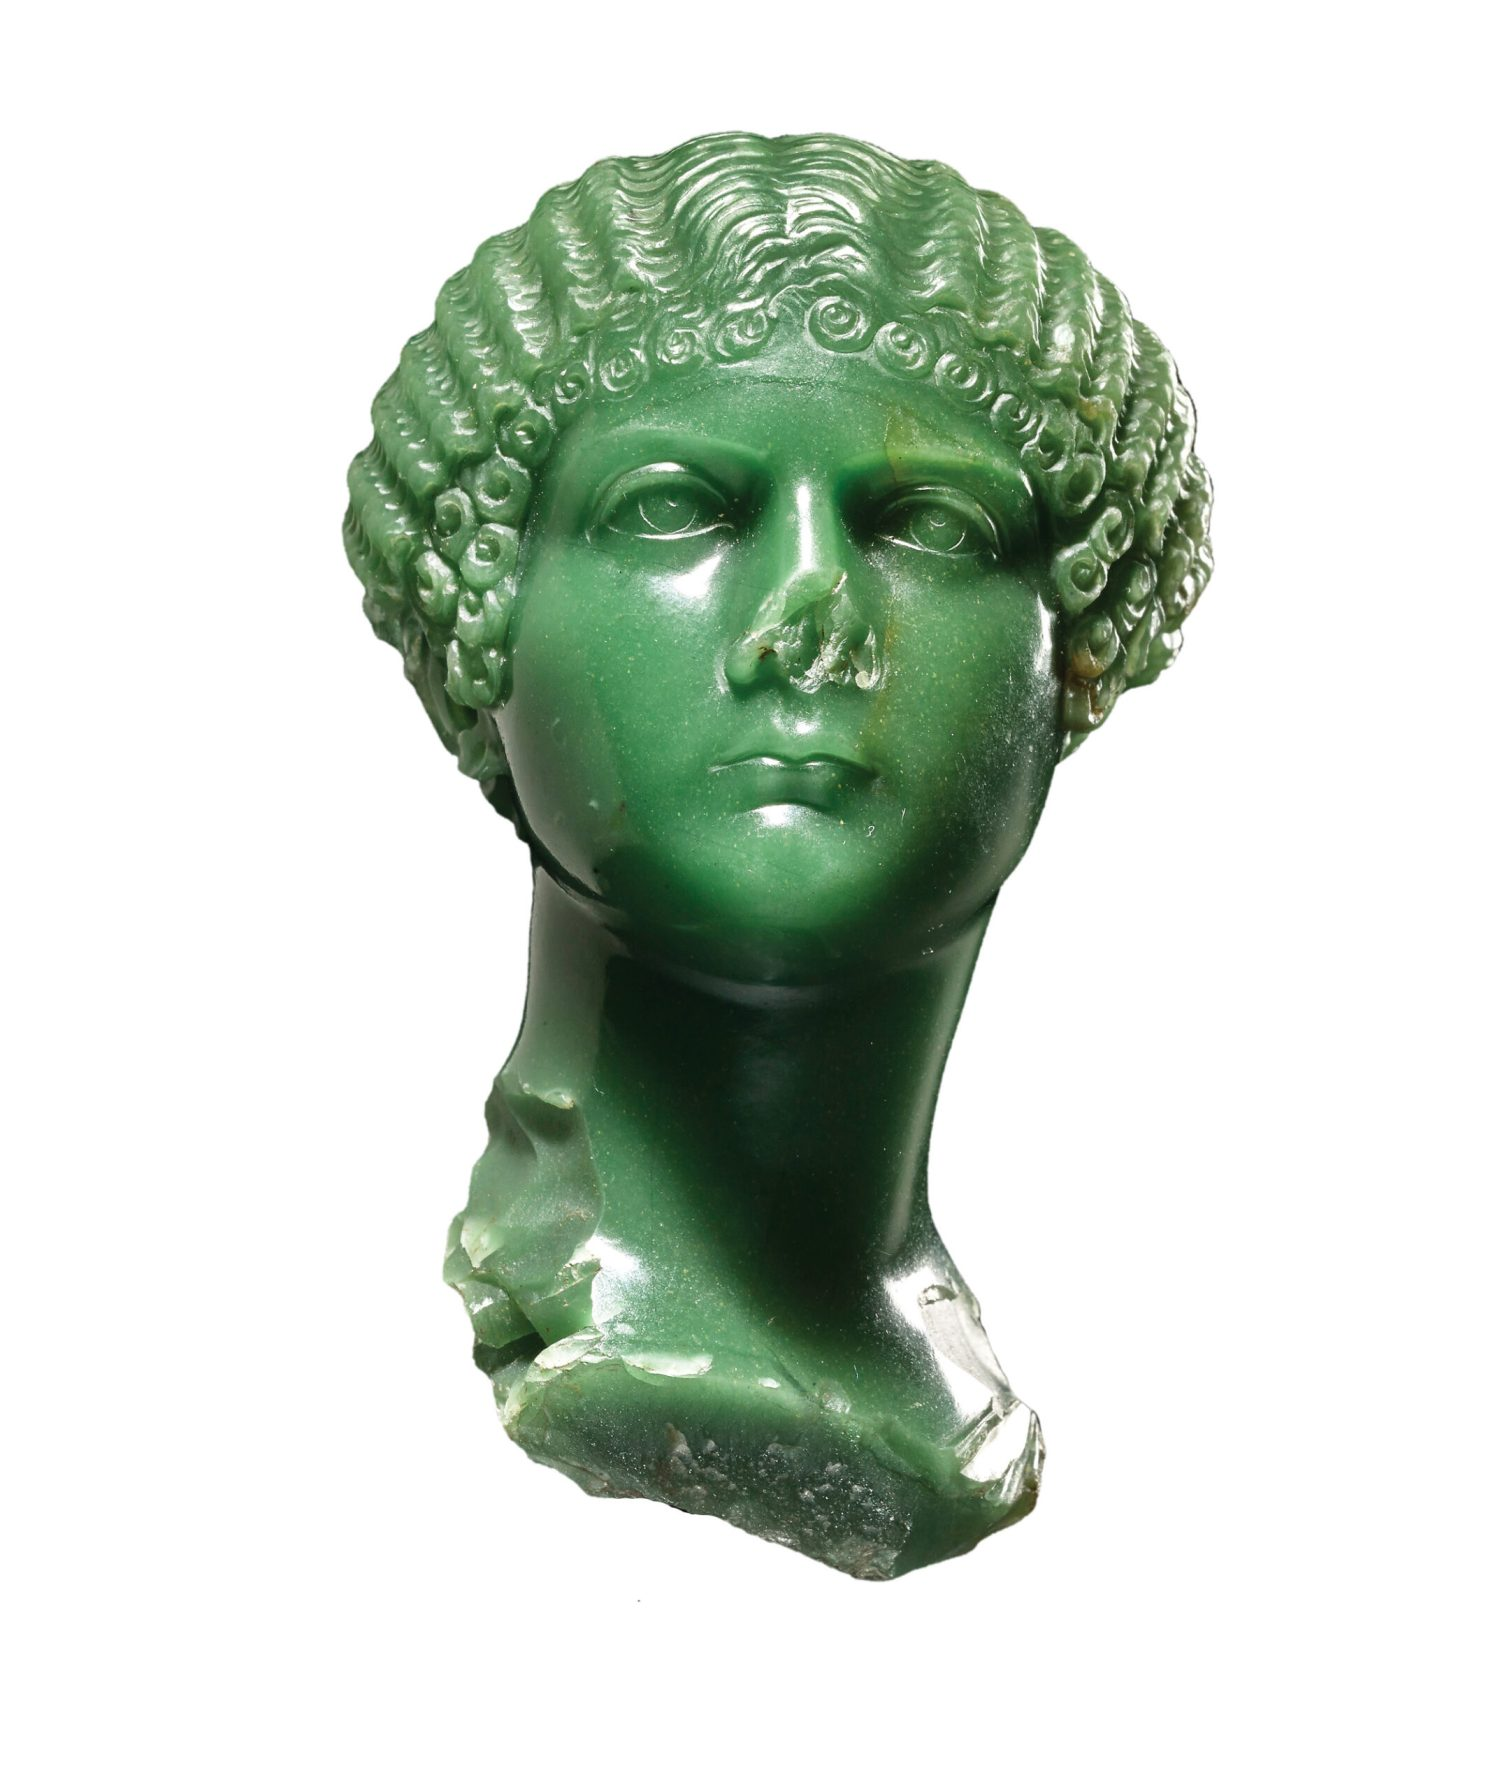 right Miniature portrait of Agrippina the Younger. Chalcedony, AD 37-39. Size: 9cm high